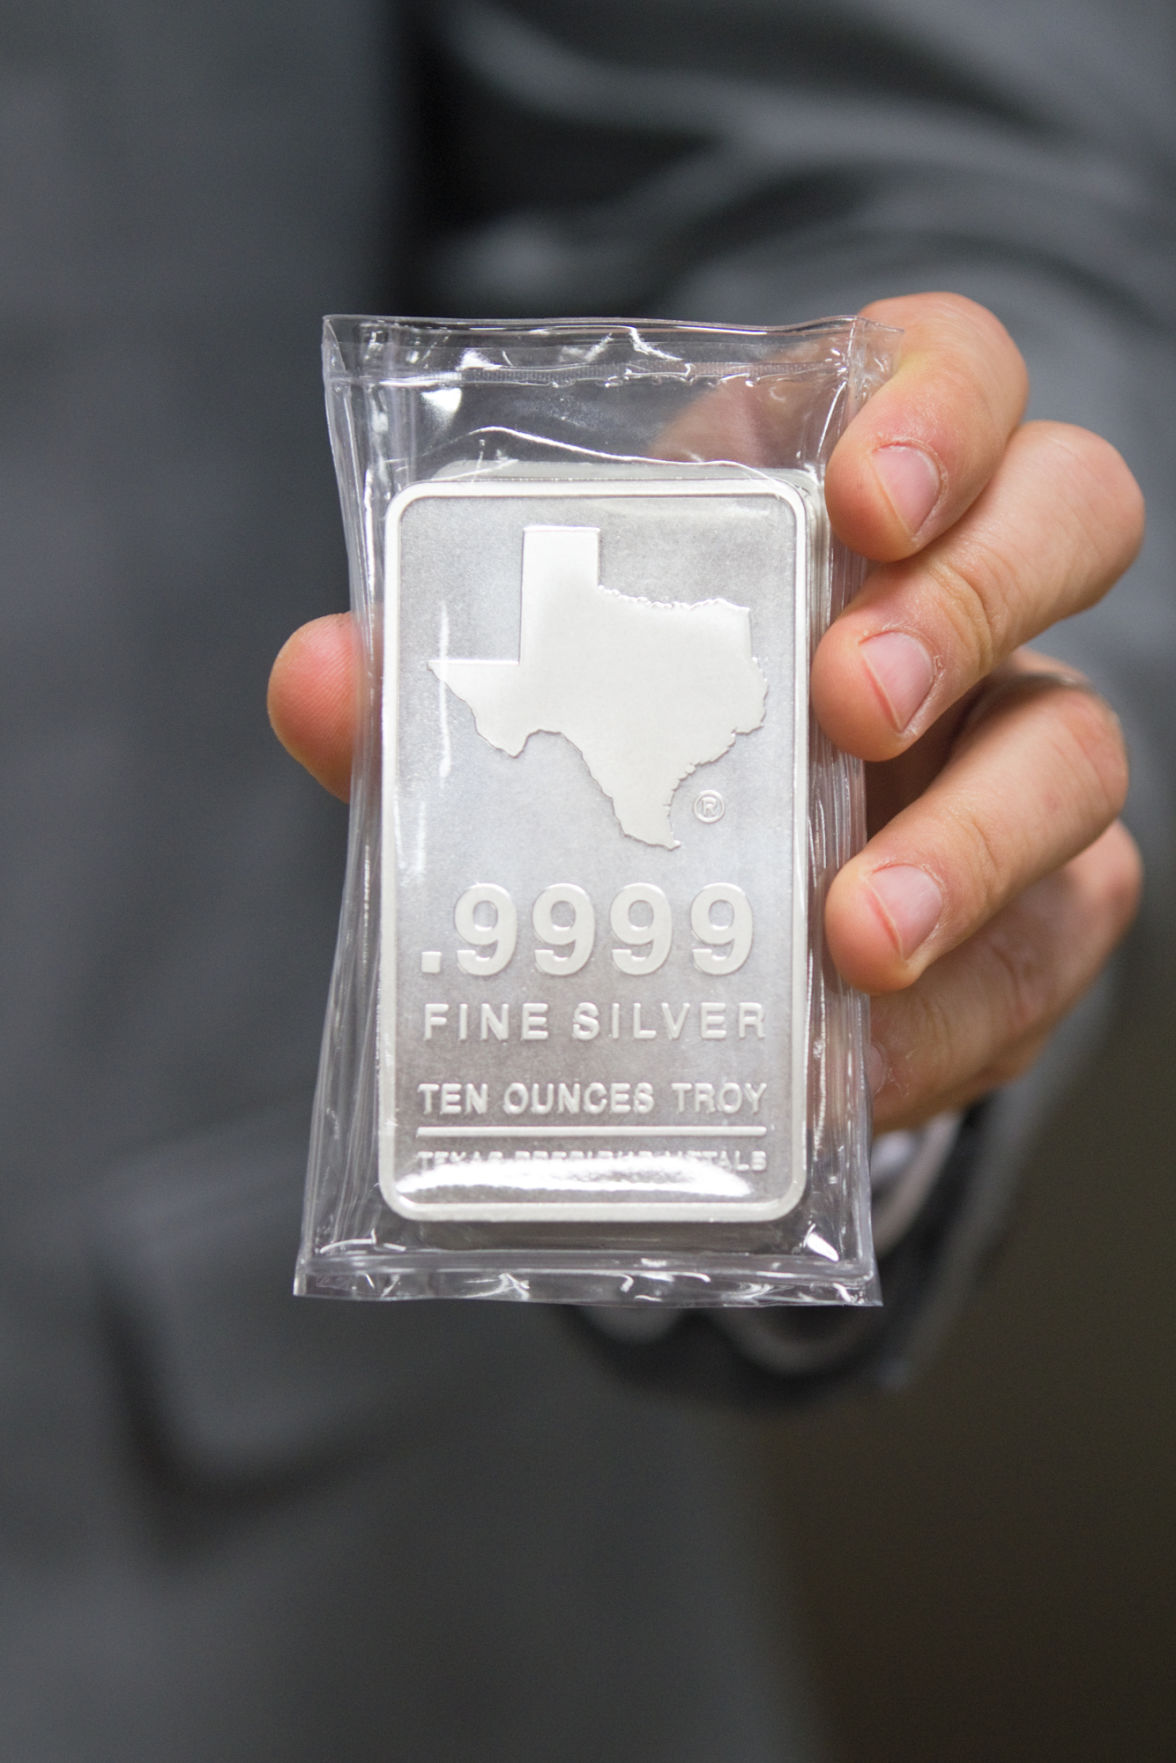 Shiner company wants to create new gold depository